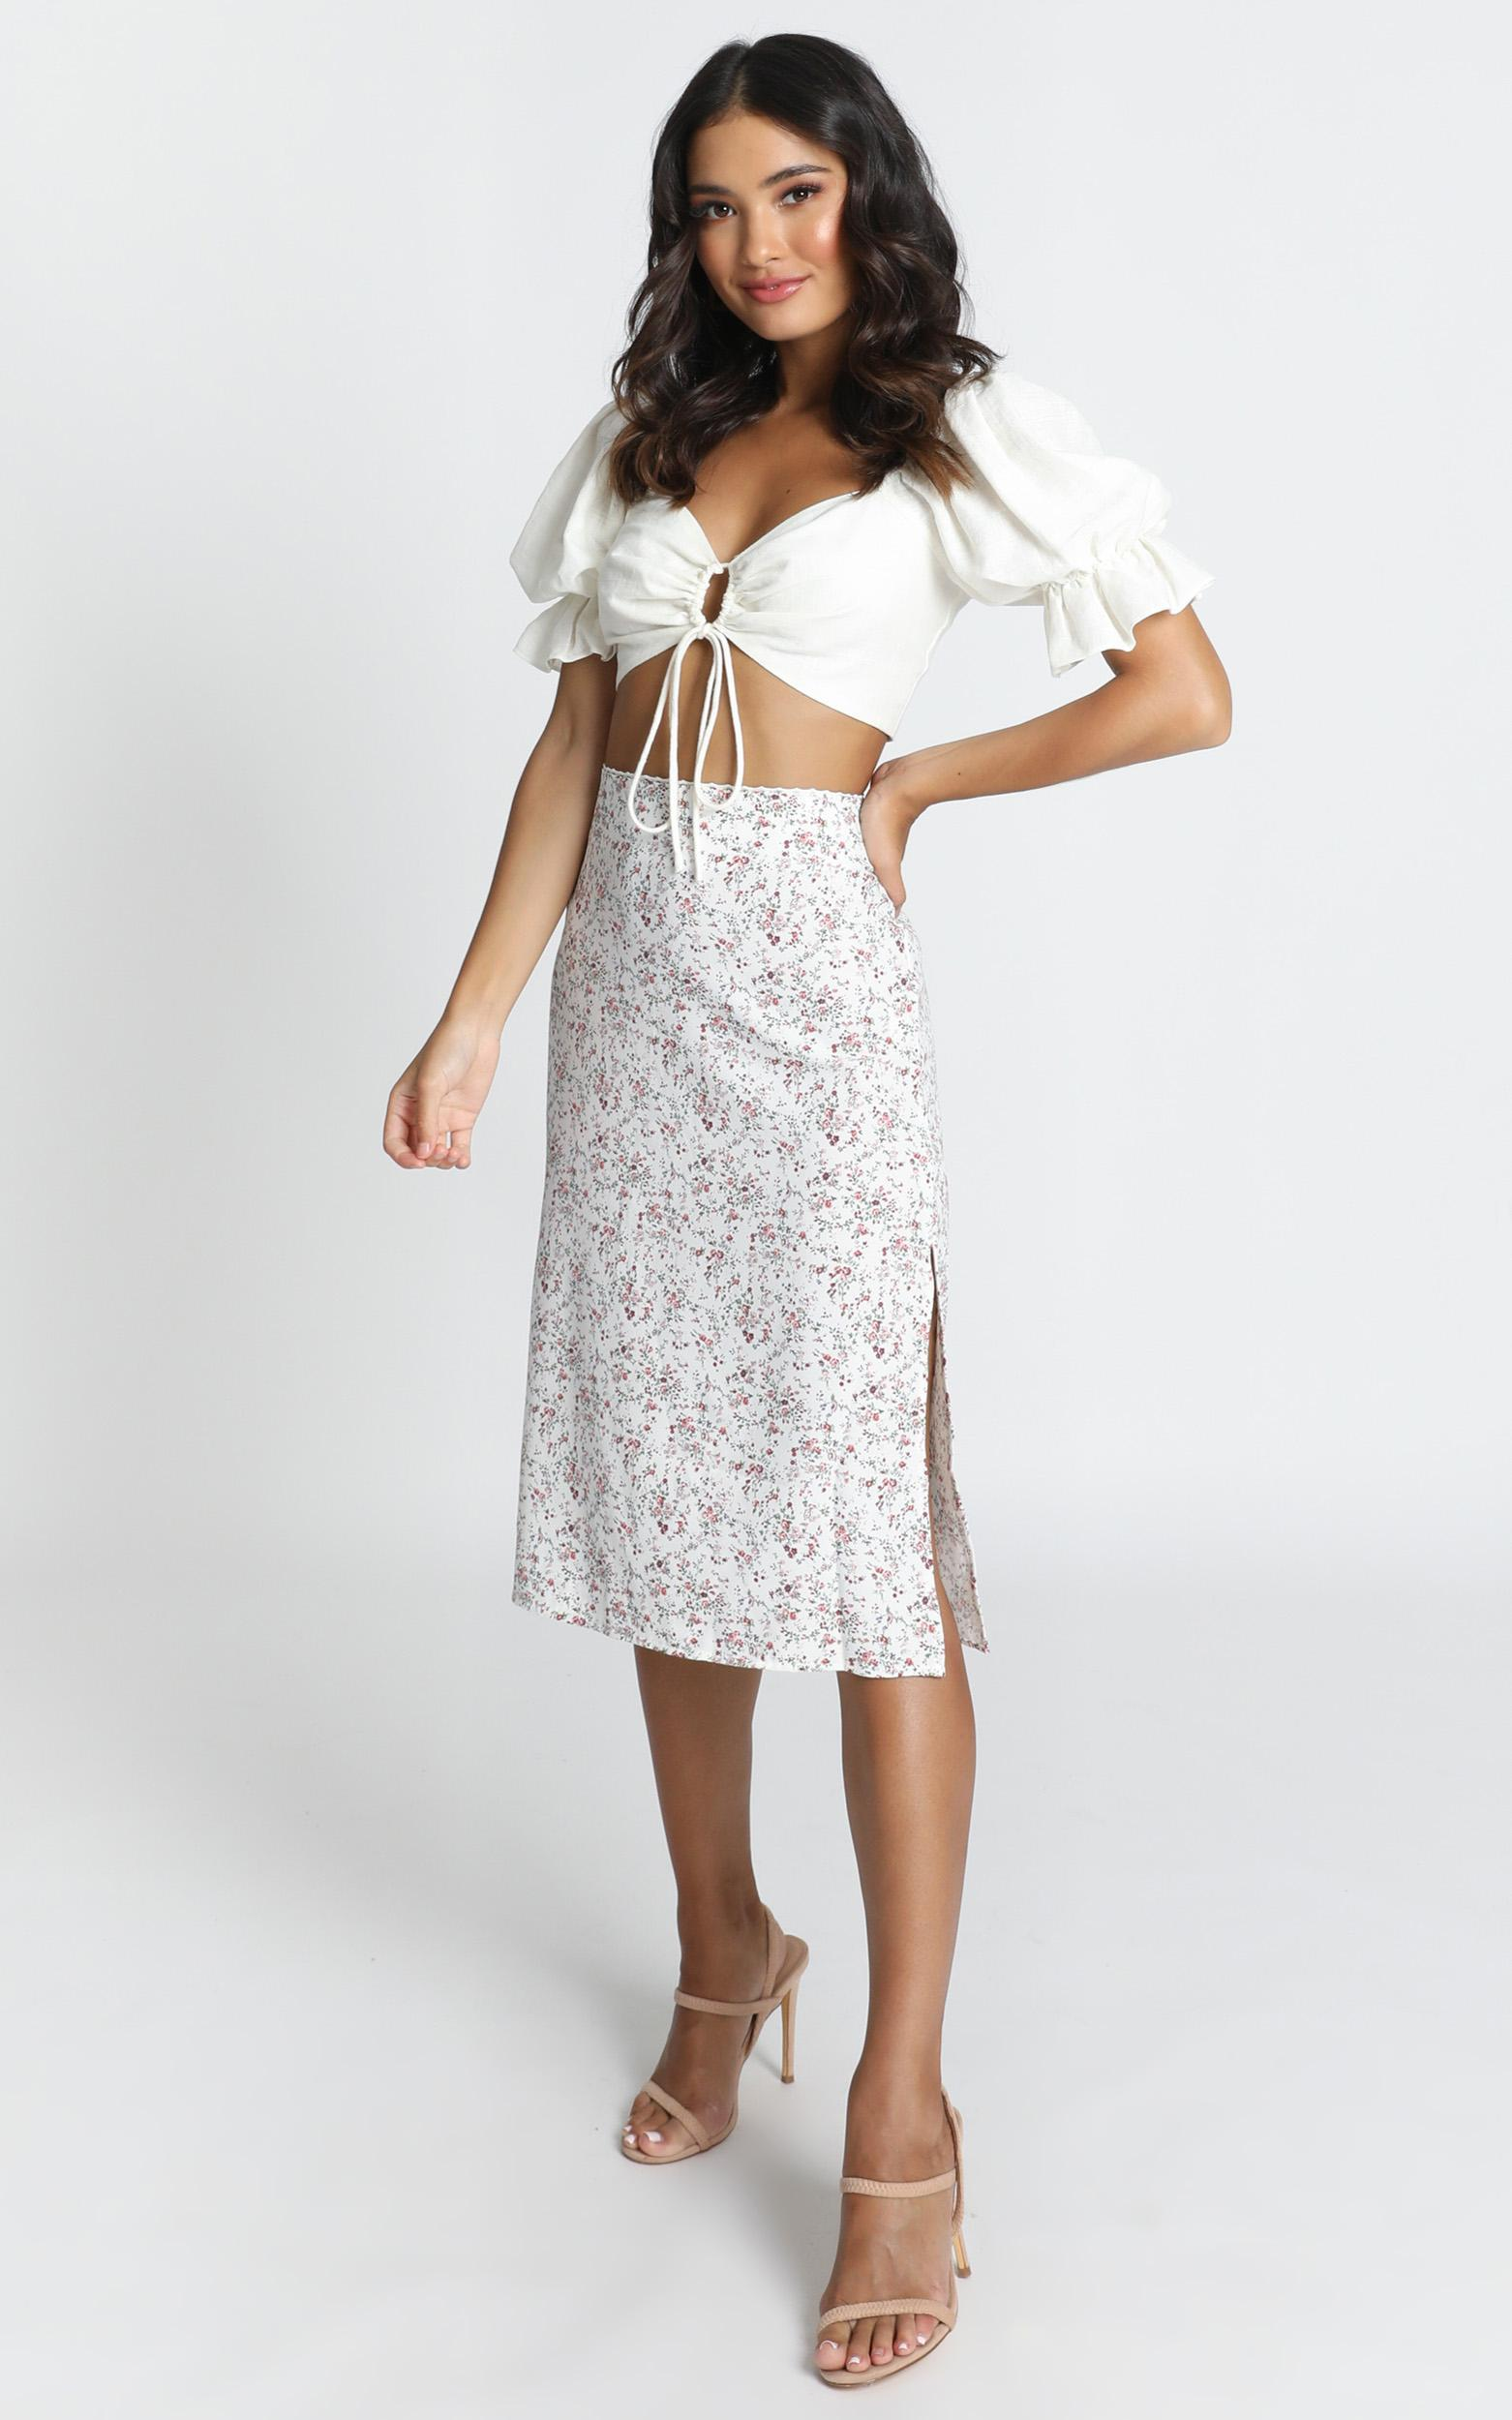 All Over Now Skirt in white - 12 (L), White, hi-res image number null